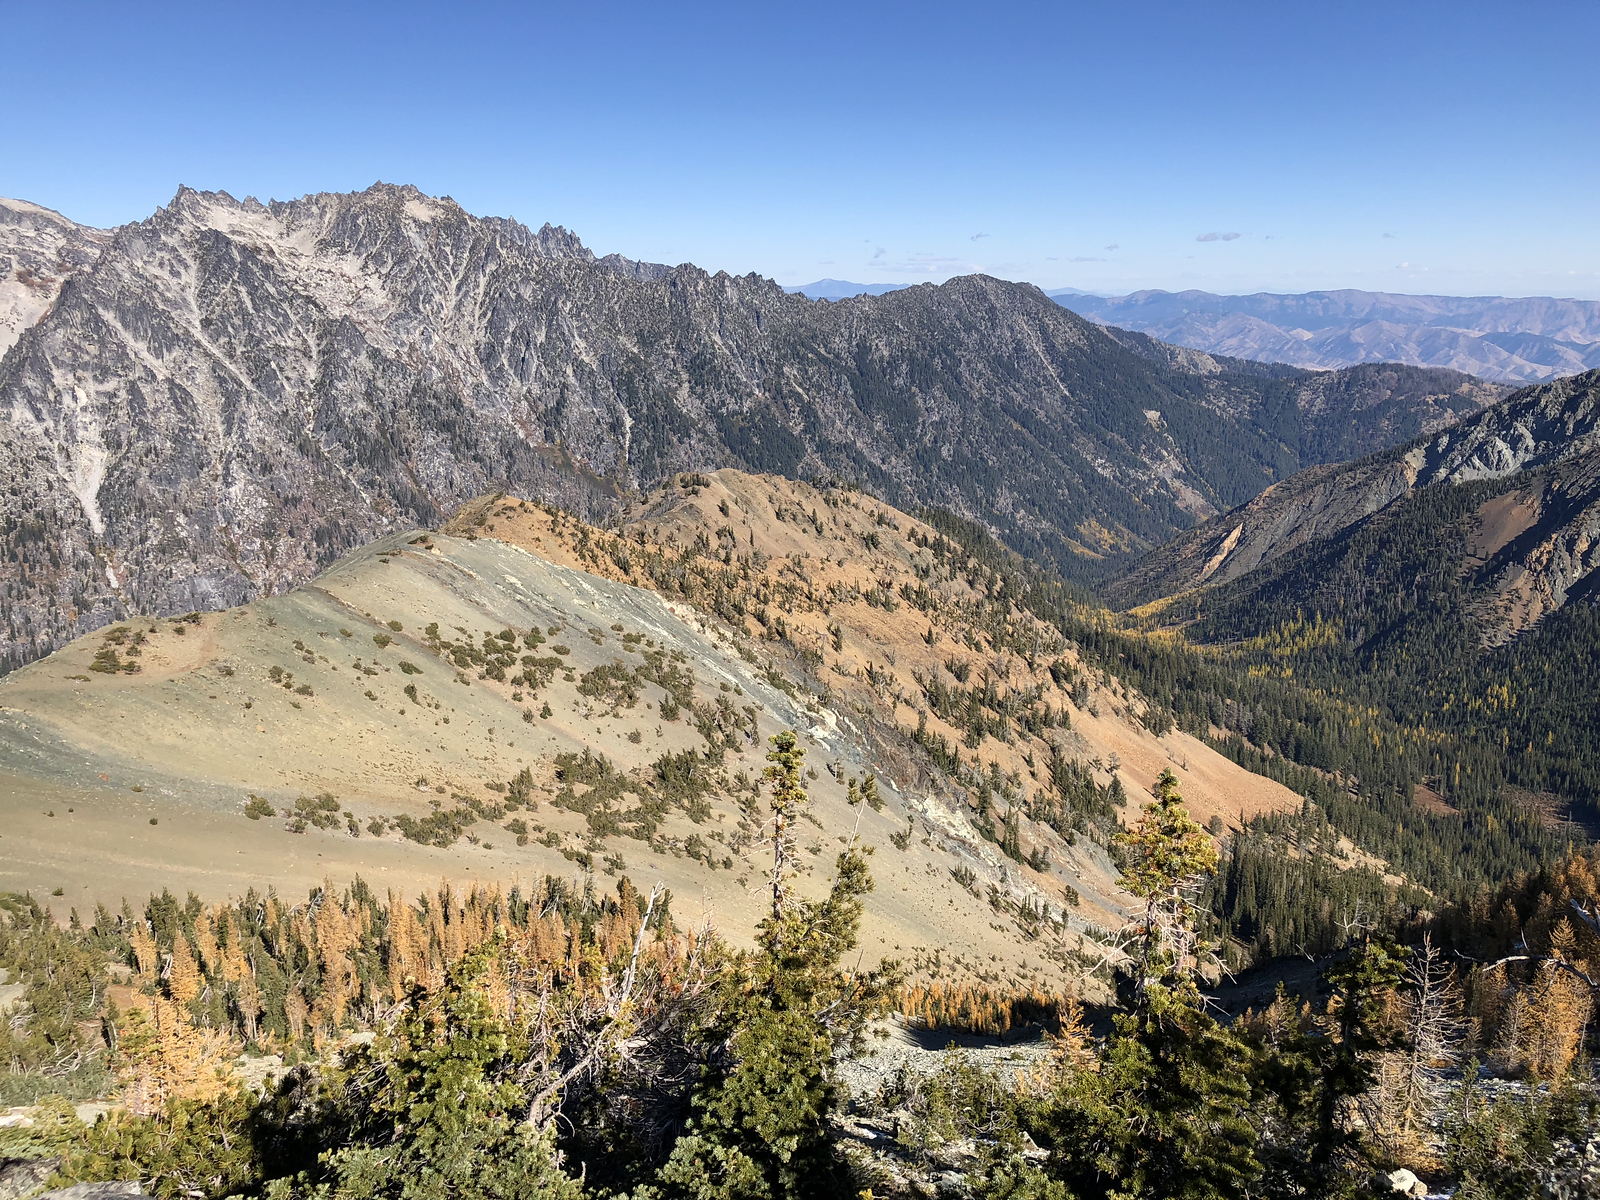 View from Navaho Peak